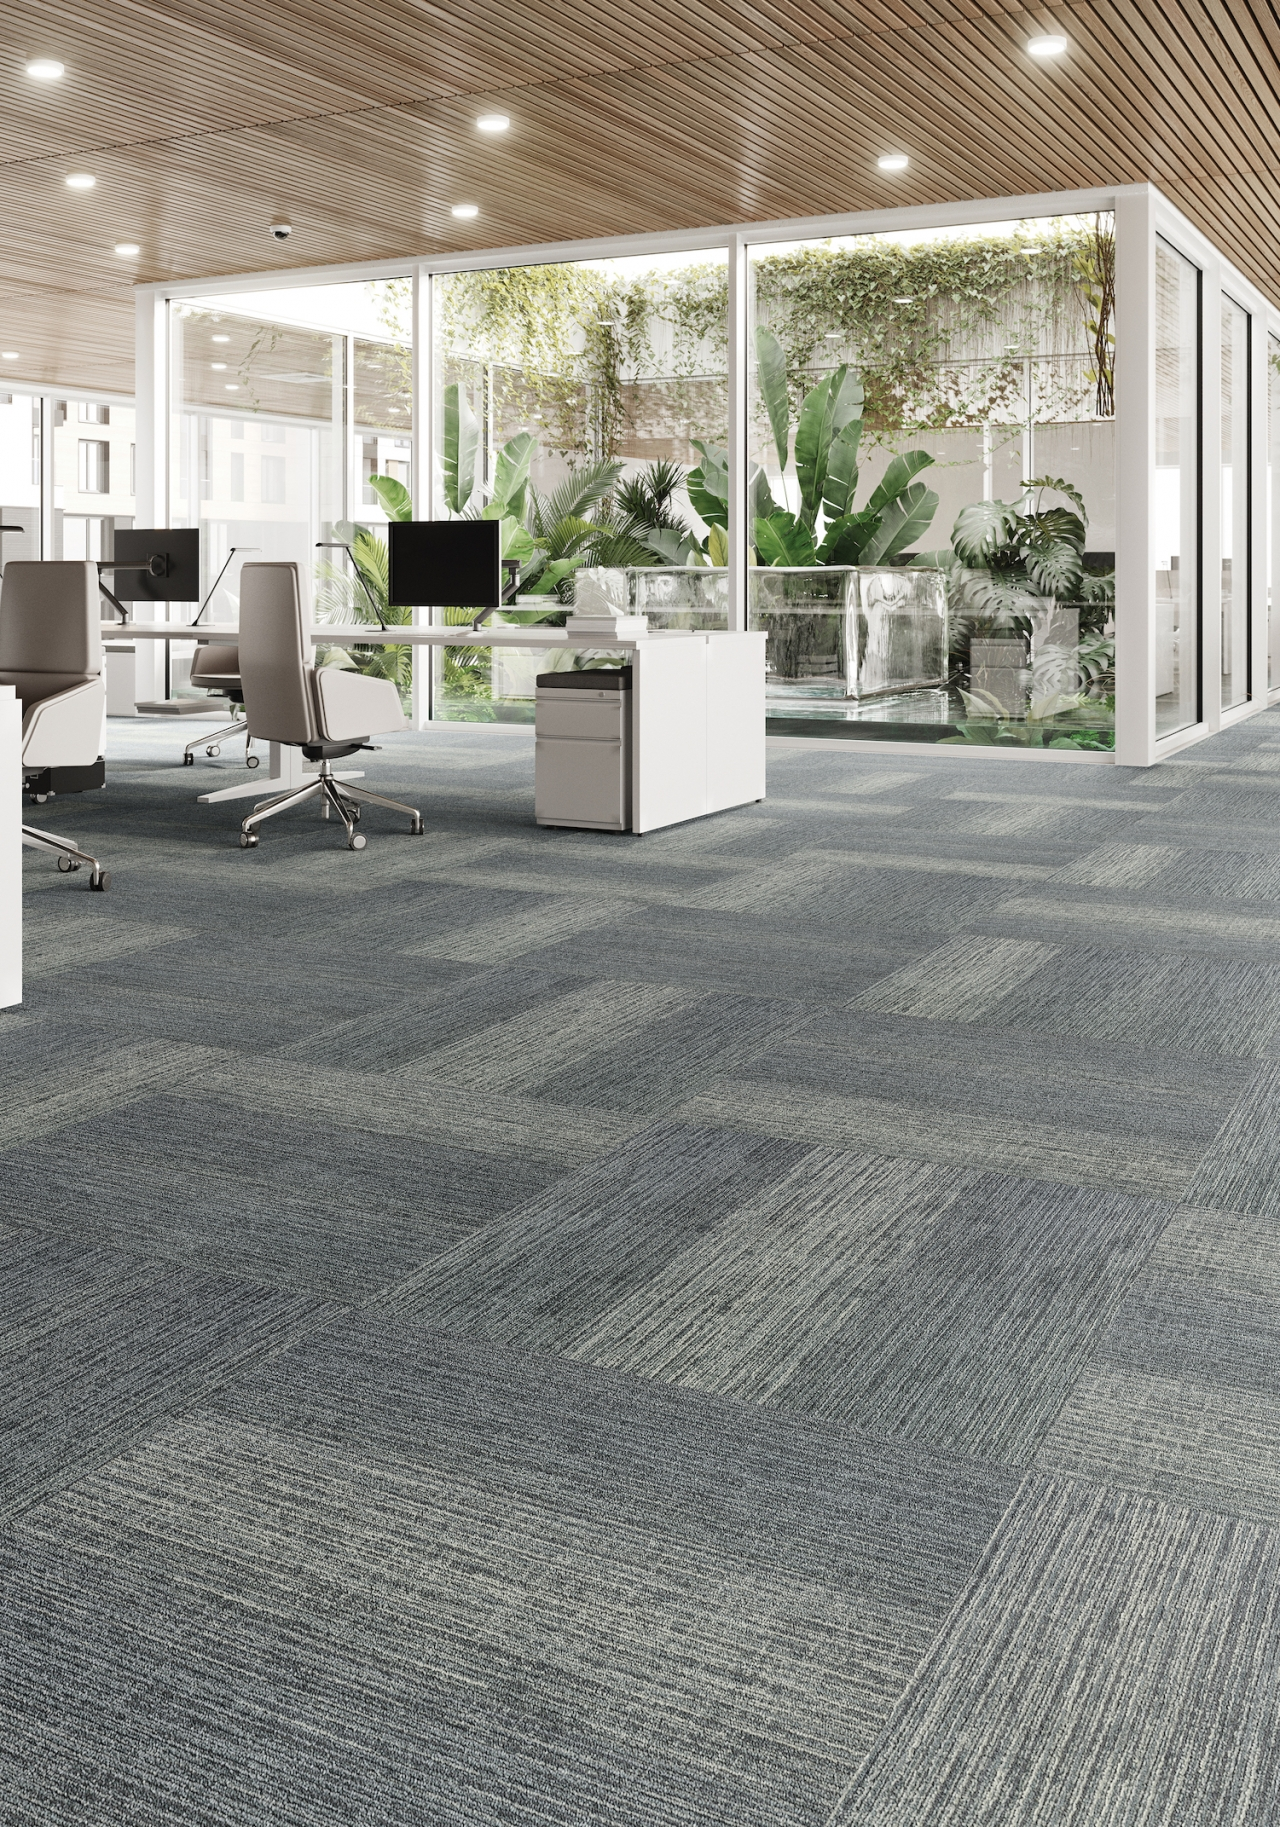 Data Tide tiles as flooring in an office space